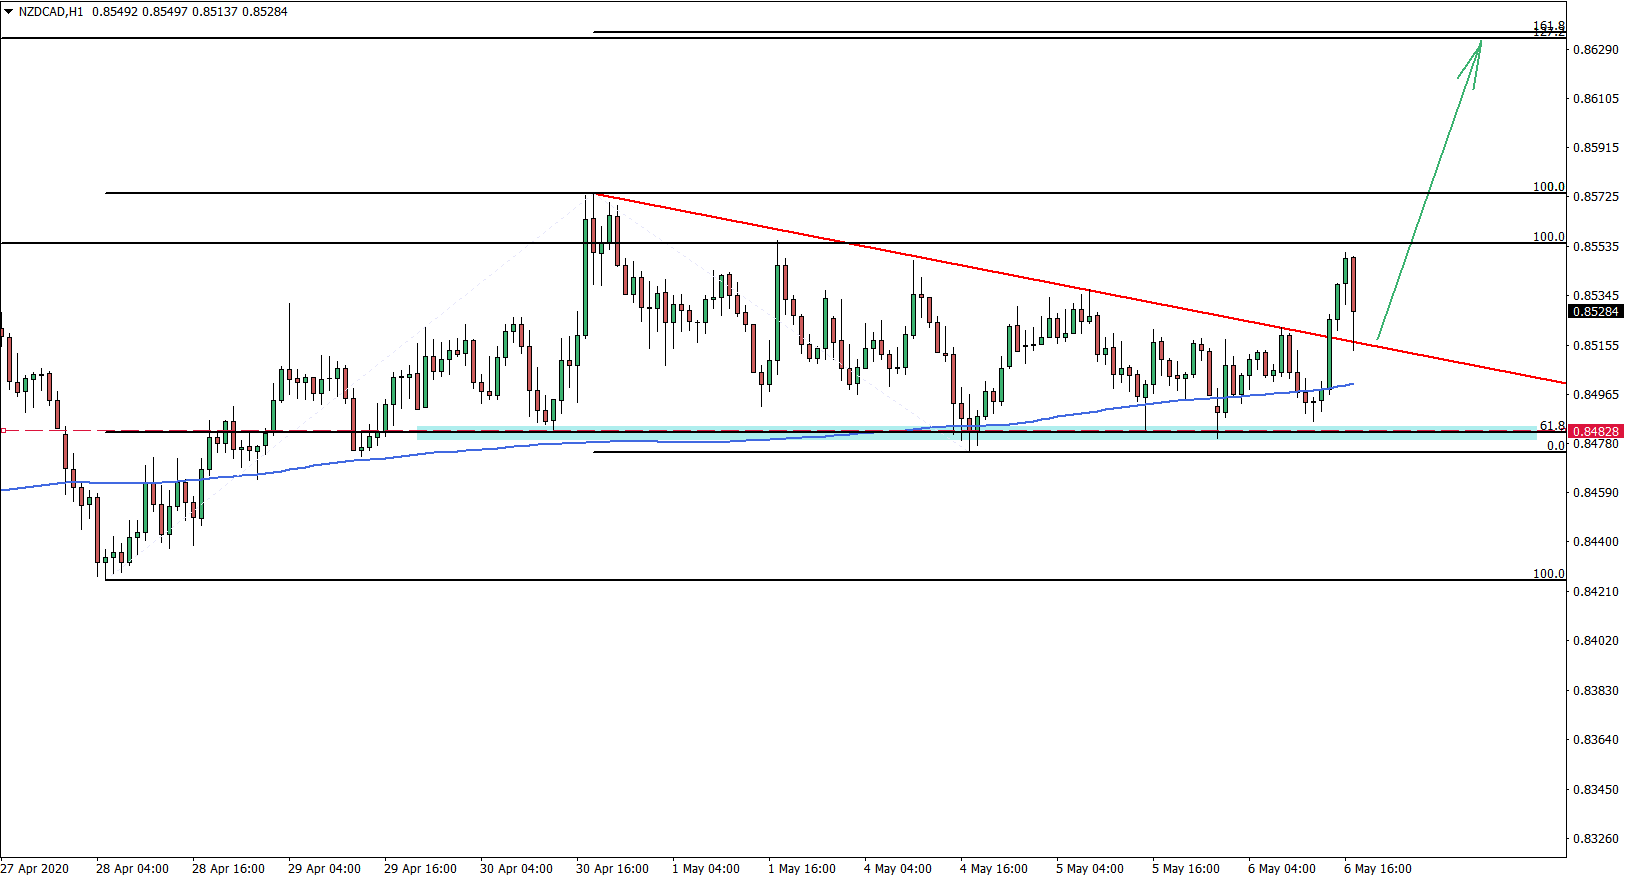 NZDCAD 1H Chart May 6th 2020